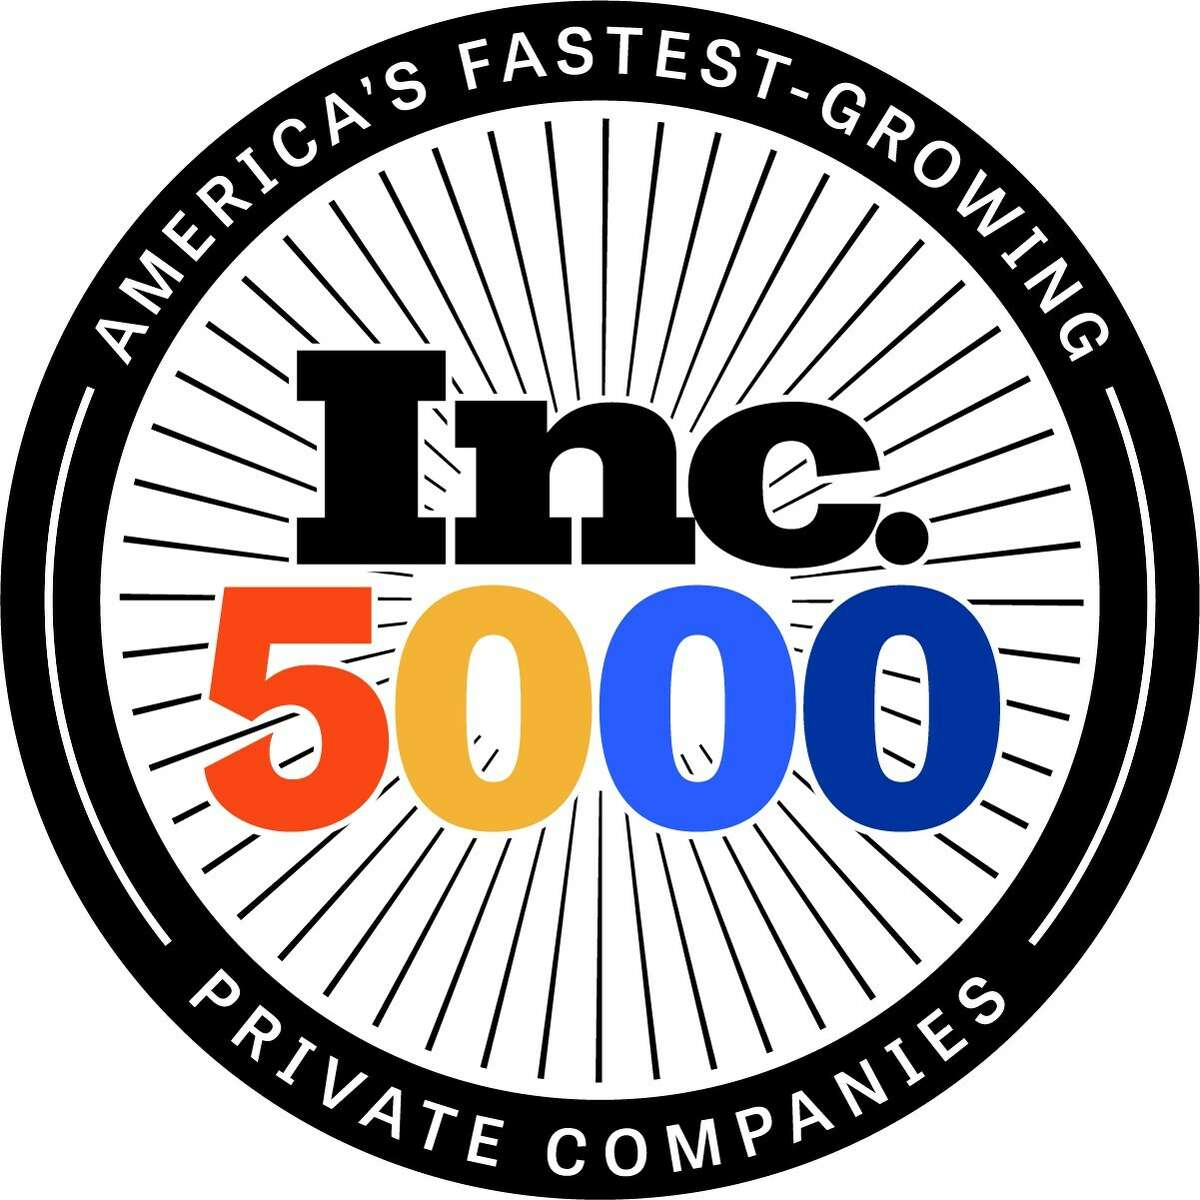 The Inc. 5000 ranks the nation's fastest-growing private companies.